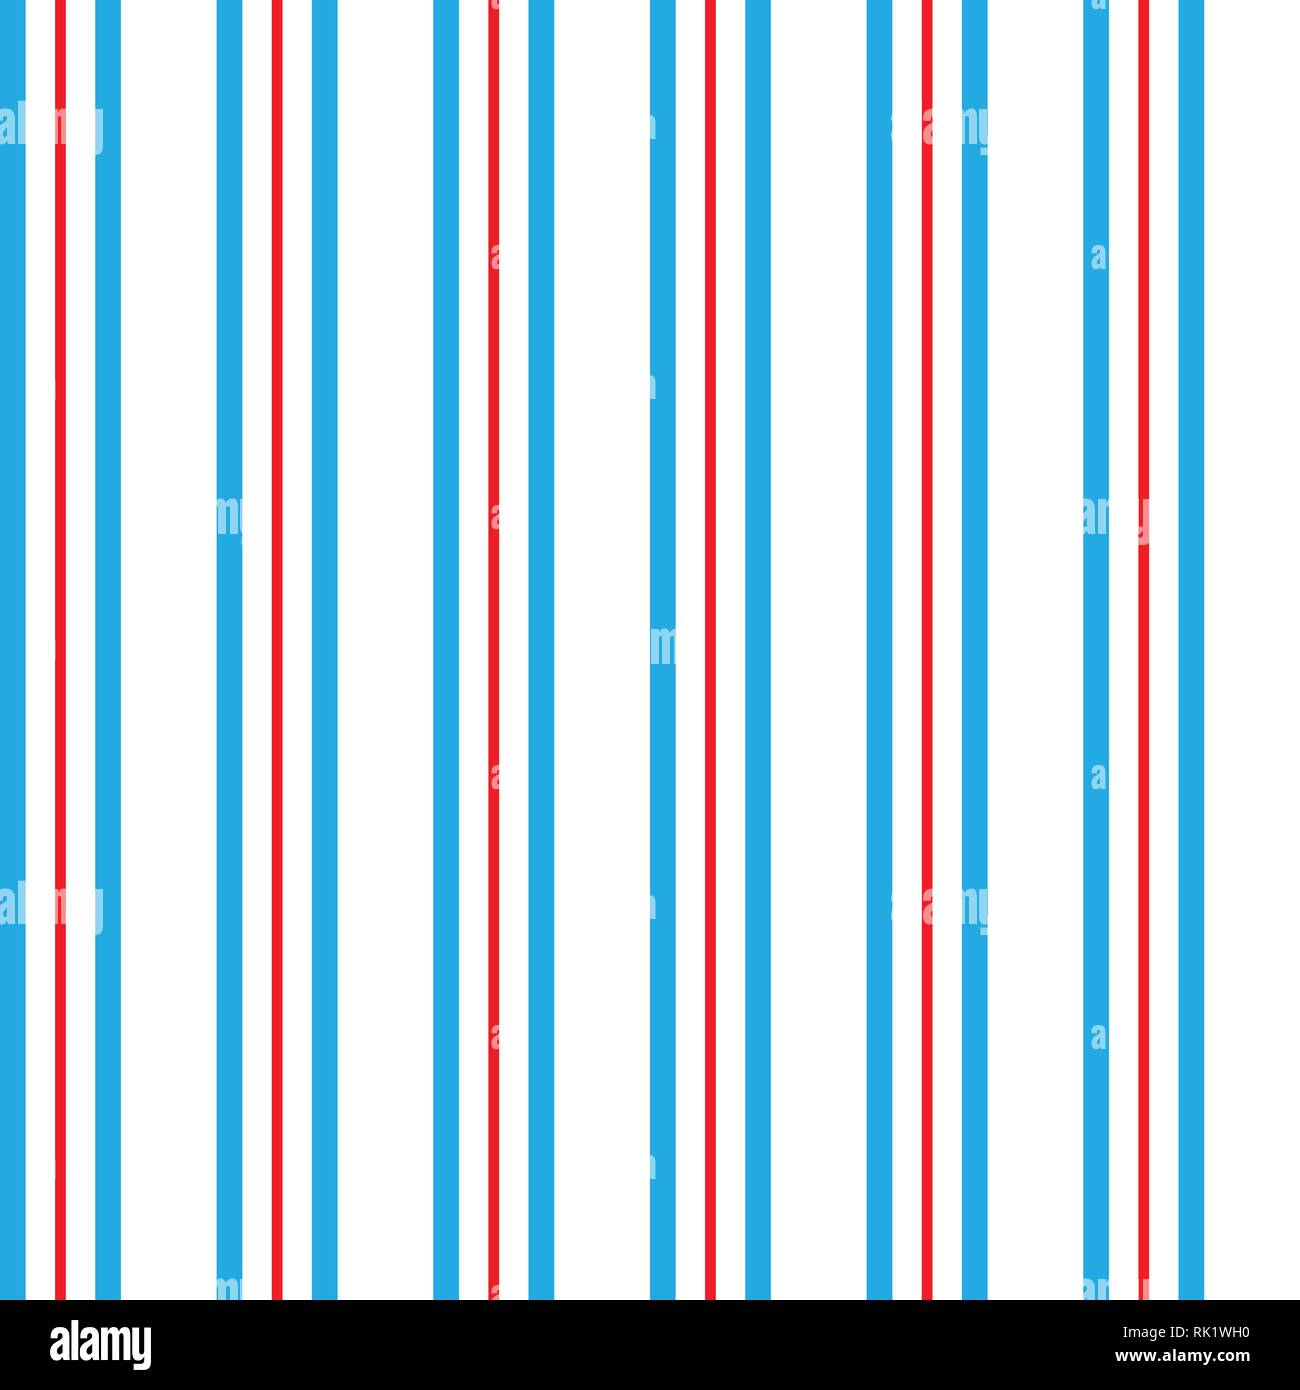 Seamless Vertical Line Pattern Vector Blue Red And White